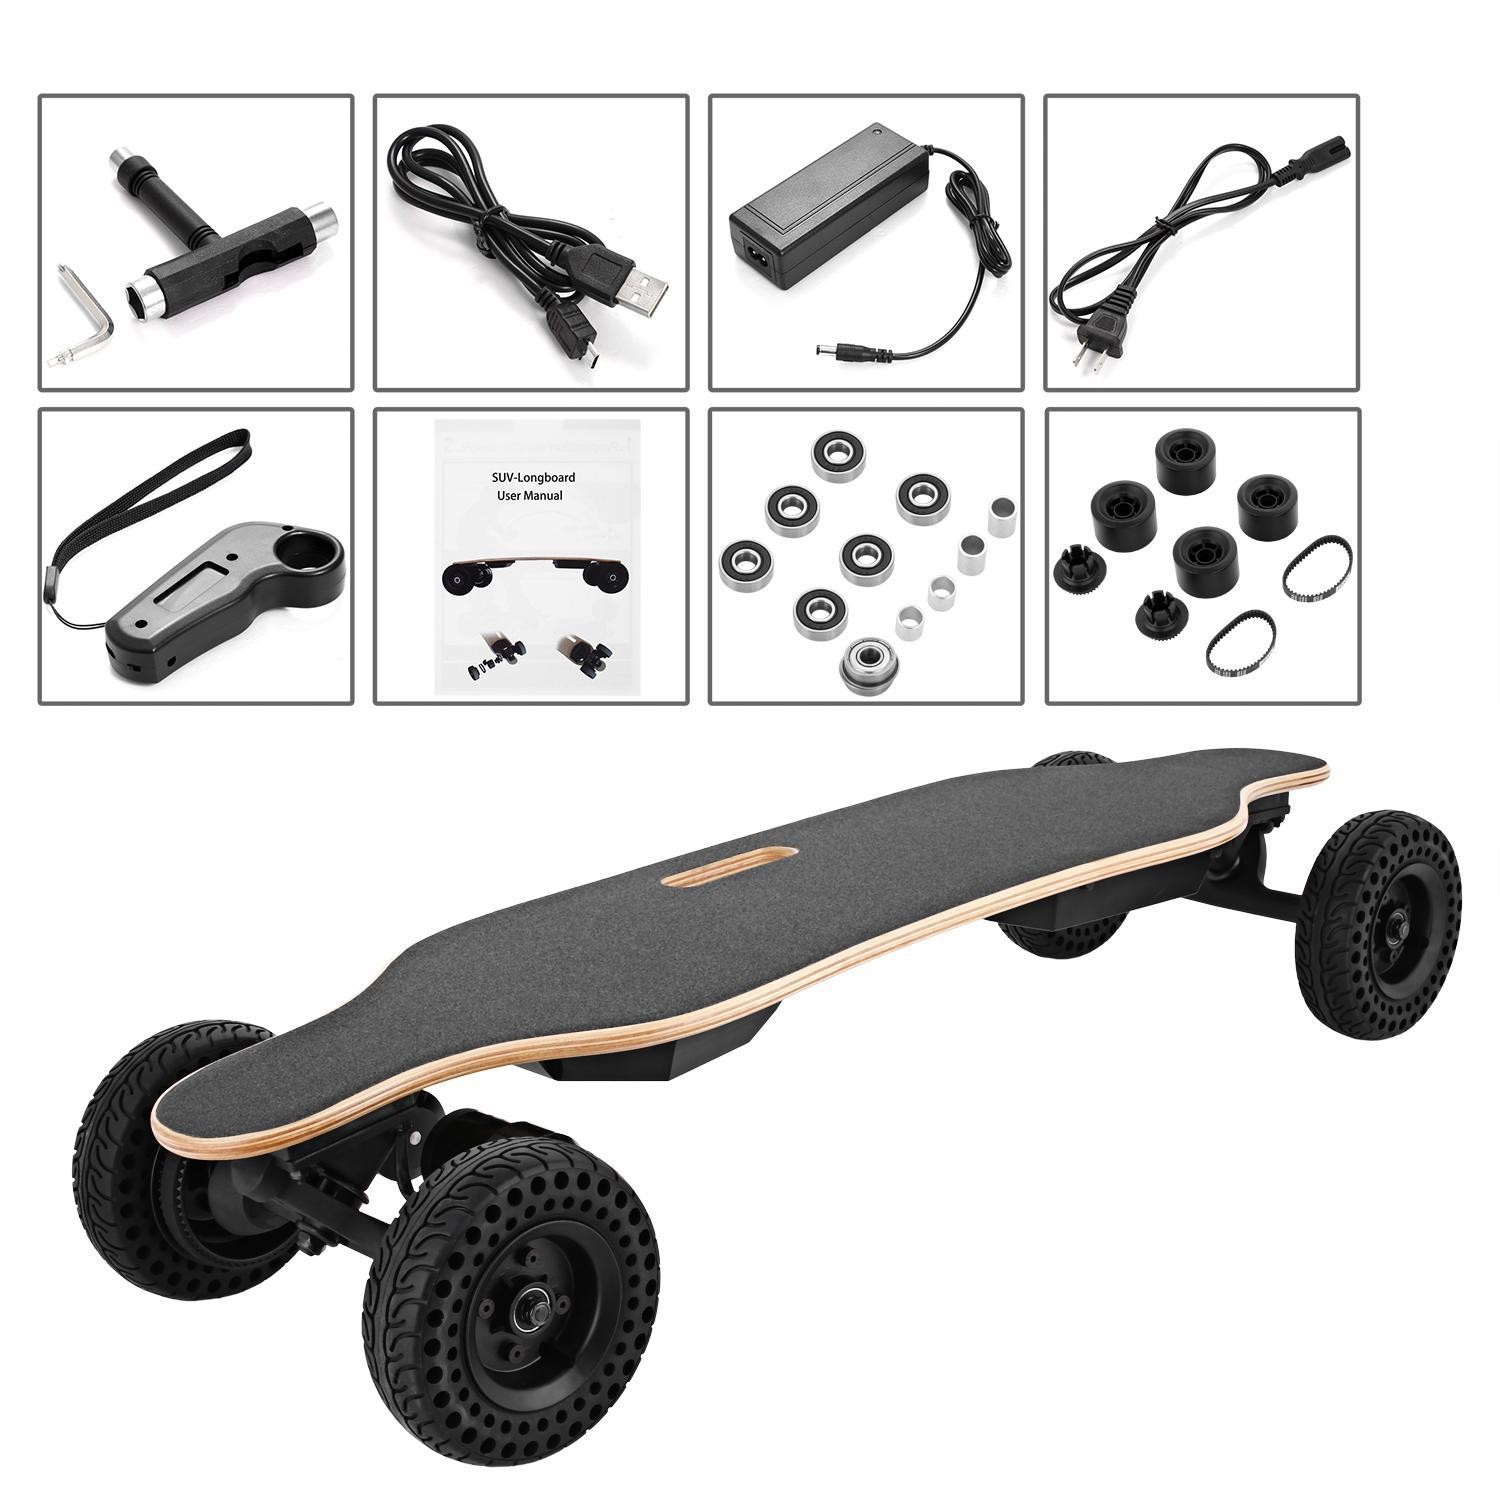 ual Motors 37inch Electric Skateboard with Wireless Handheld Remote Control SUV-Longboard BTC